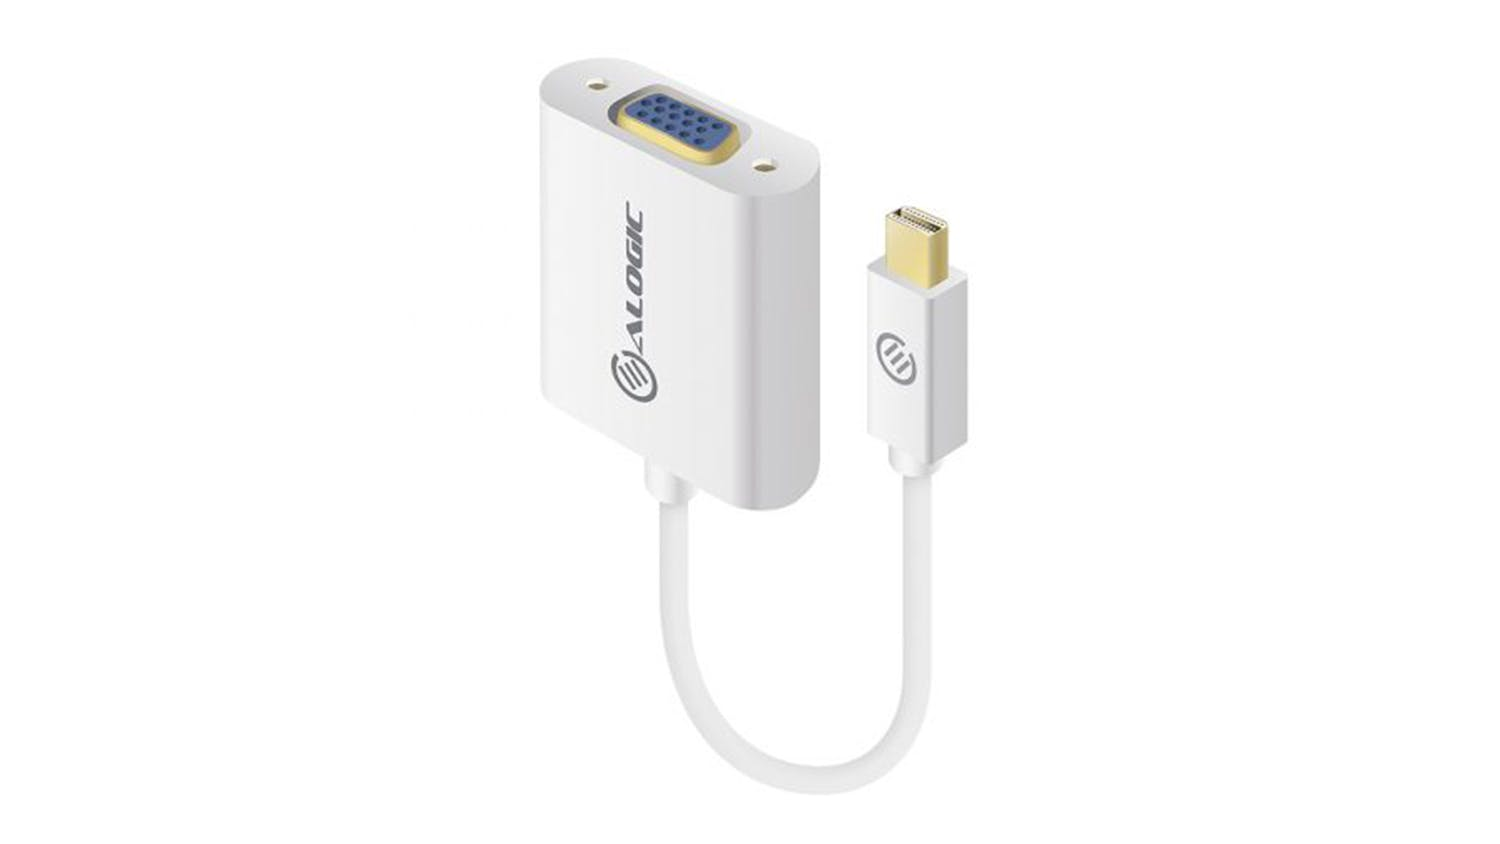 Alogic Premium Series Mini DisplayPort to VGA Adapter - 15cm